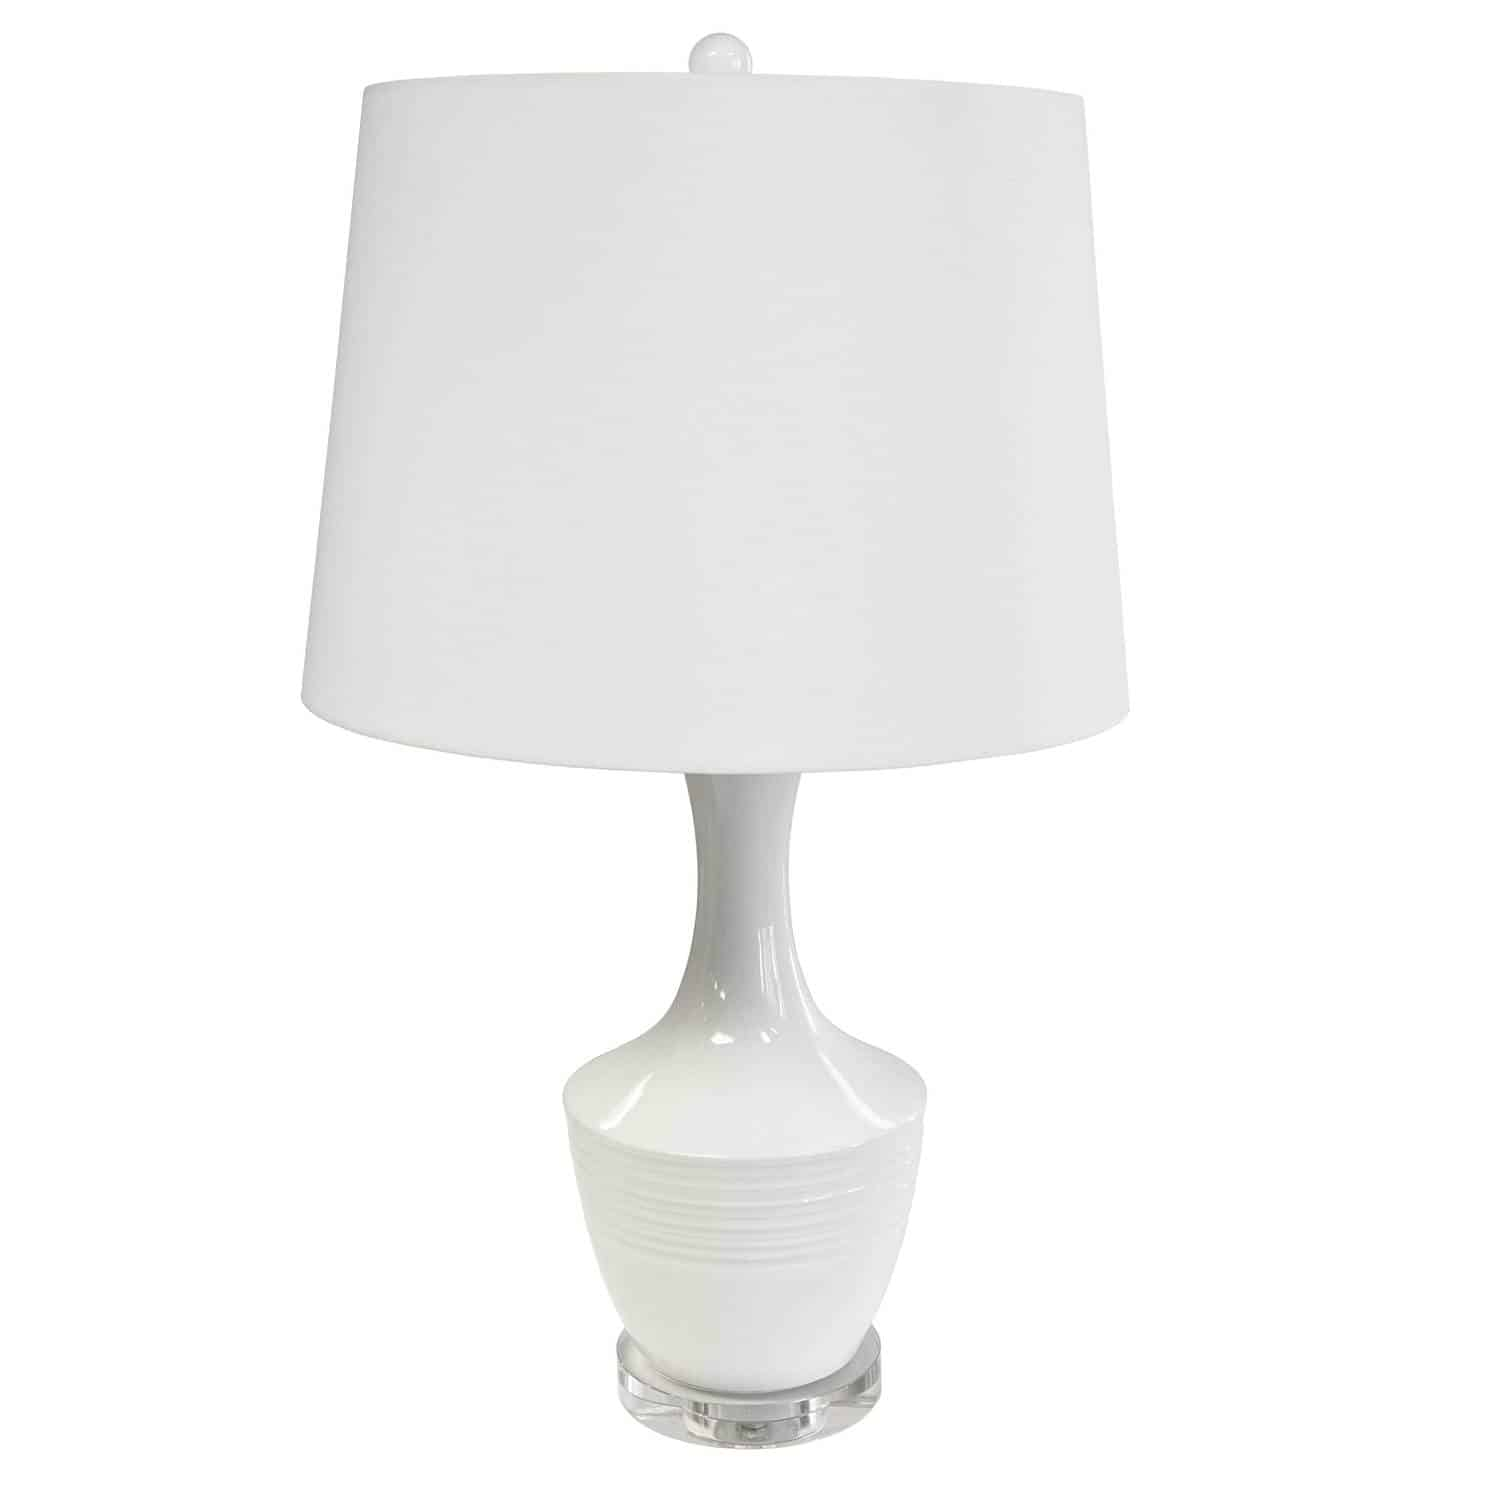 1 Light Ceramic Oversized Table Lamp, White Finish